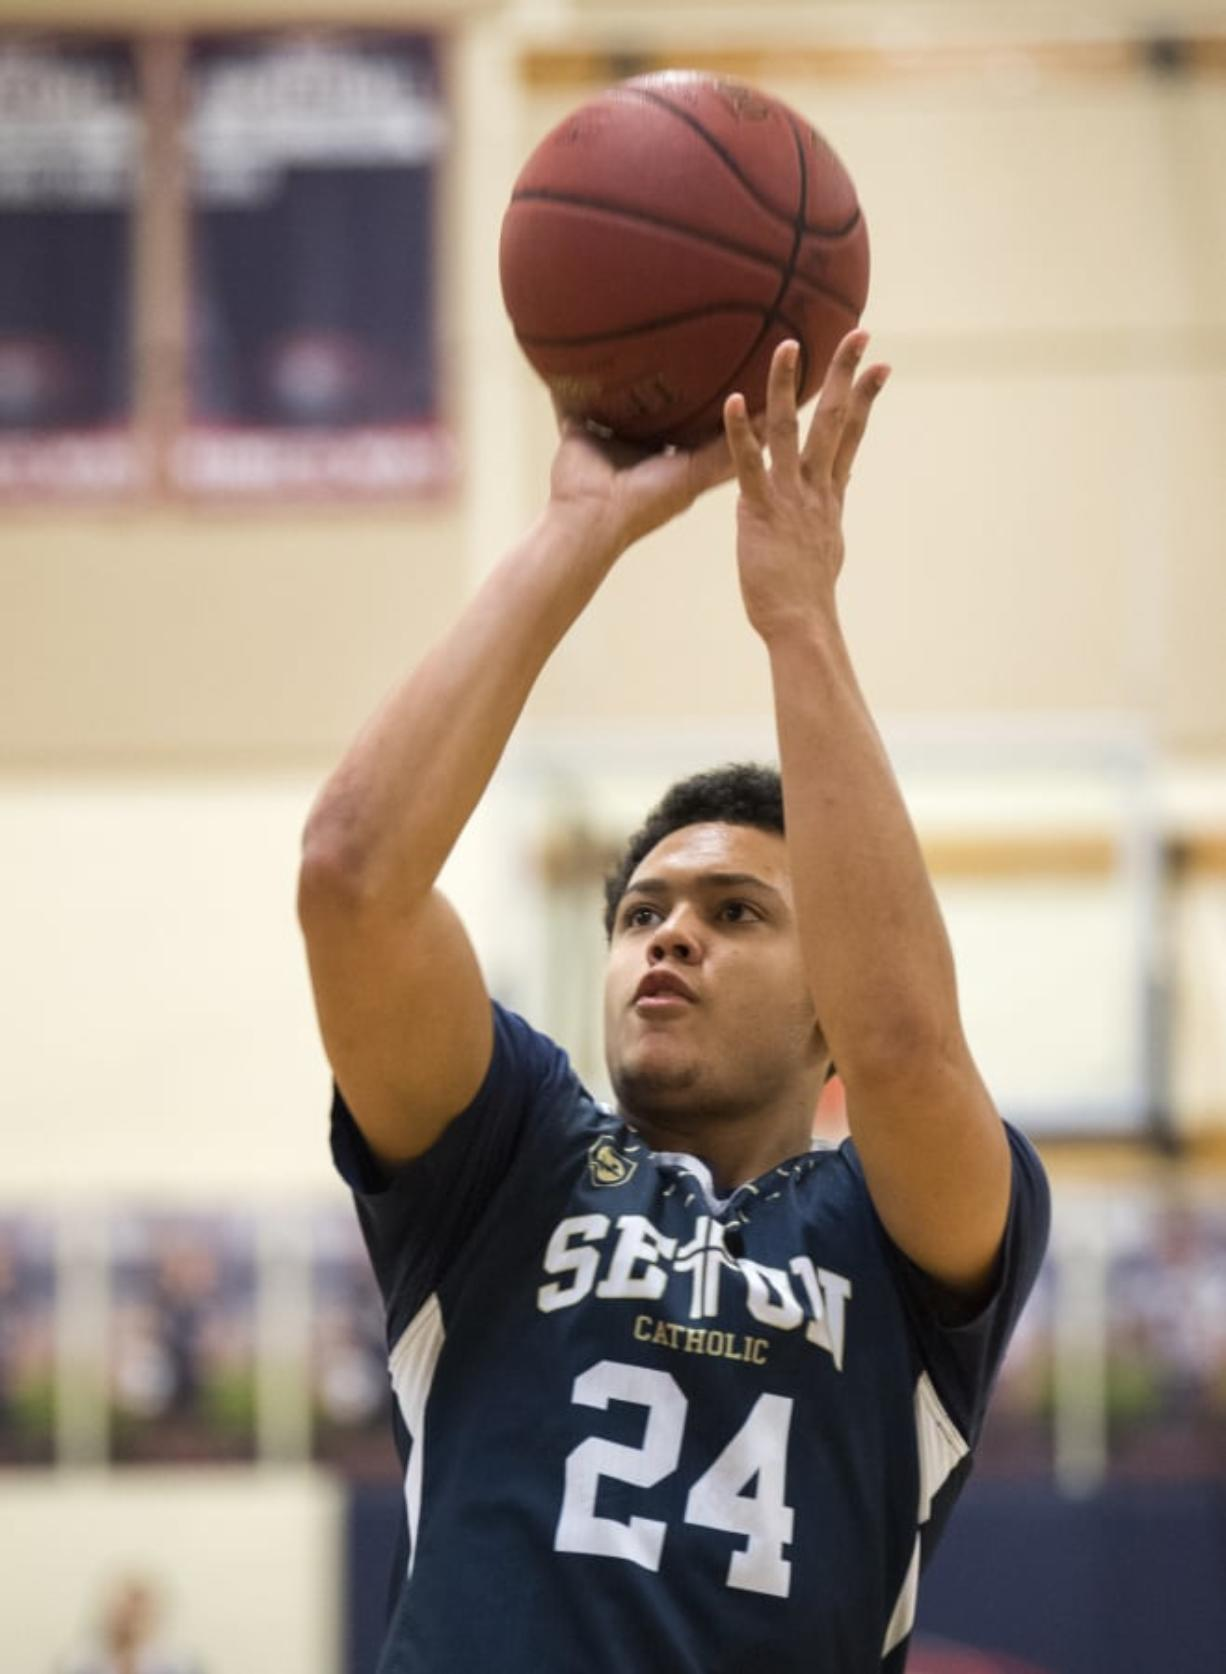 Basketball journey continues for Seton Catholic's Morgan